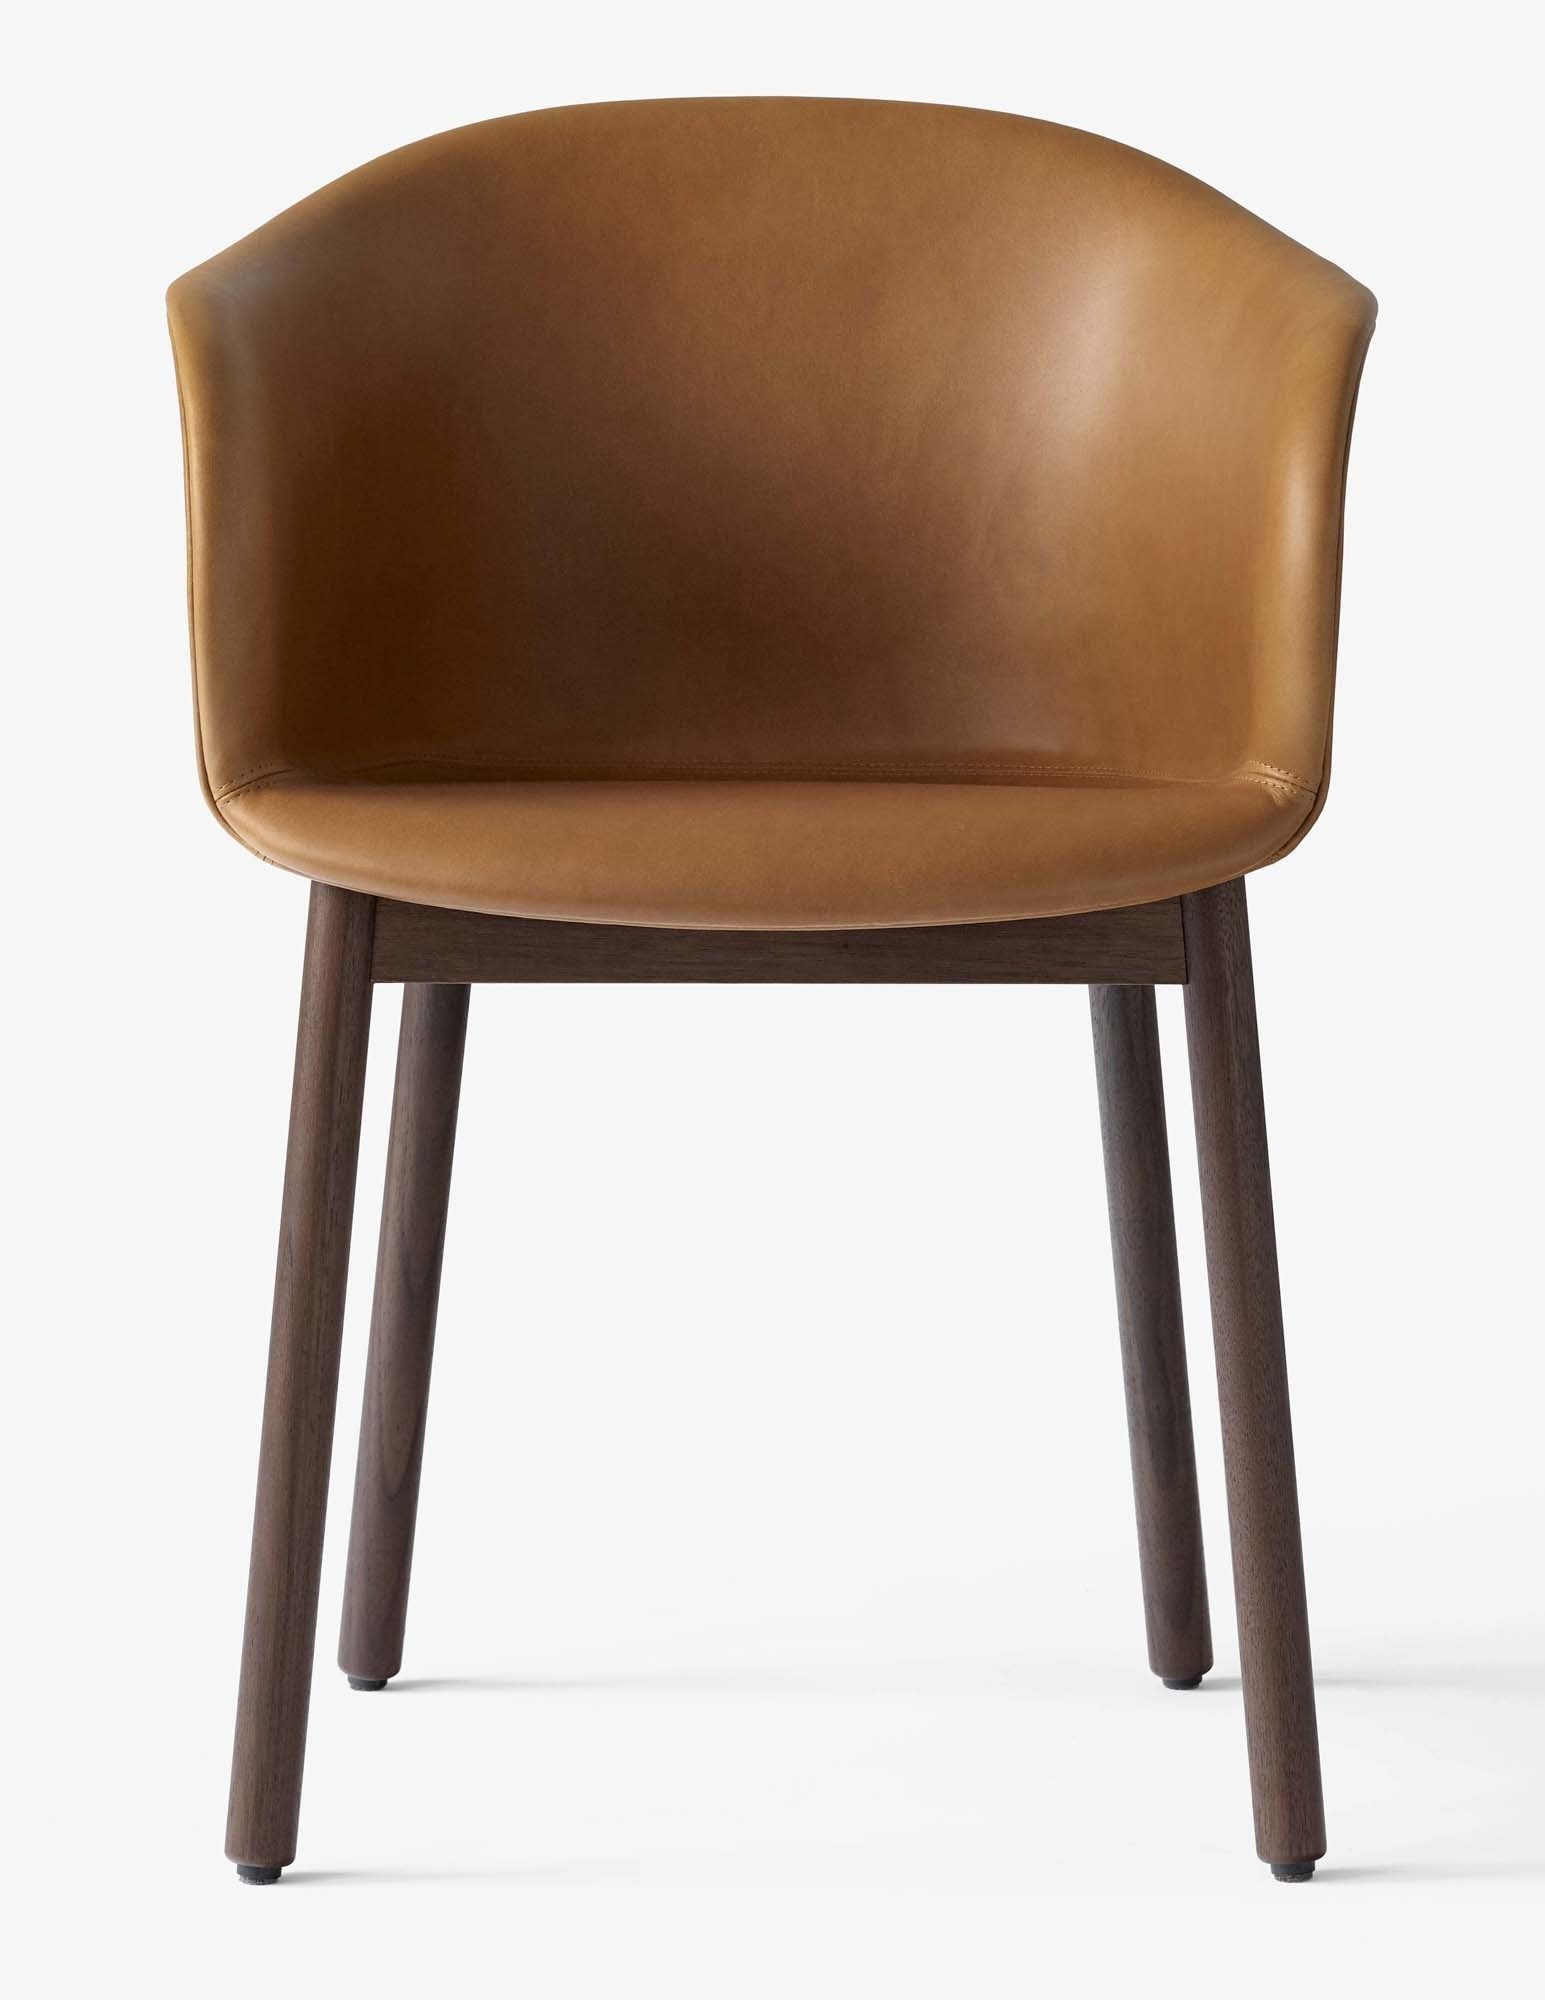 &tradition Elefy JH31 Chair - Silk Leather